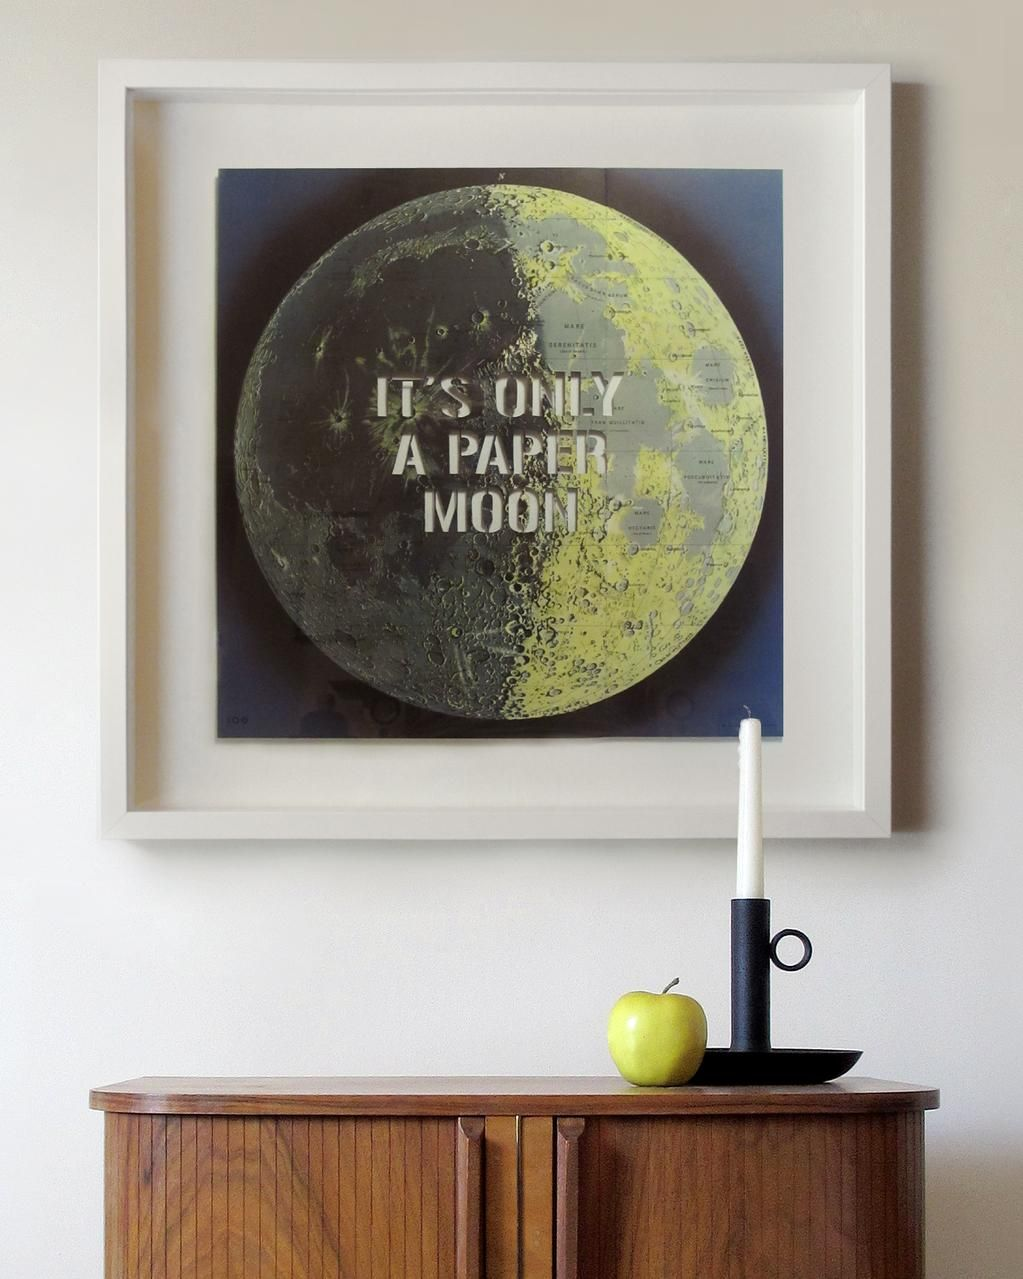 'It's only a paper moon'. For best results, hang over a cardboard sea. www.ree-doo.co.uk